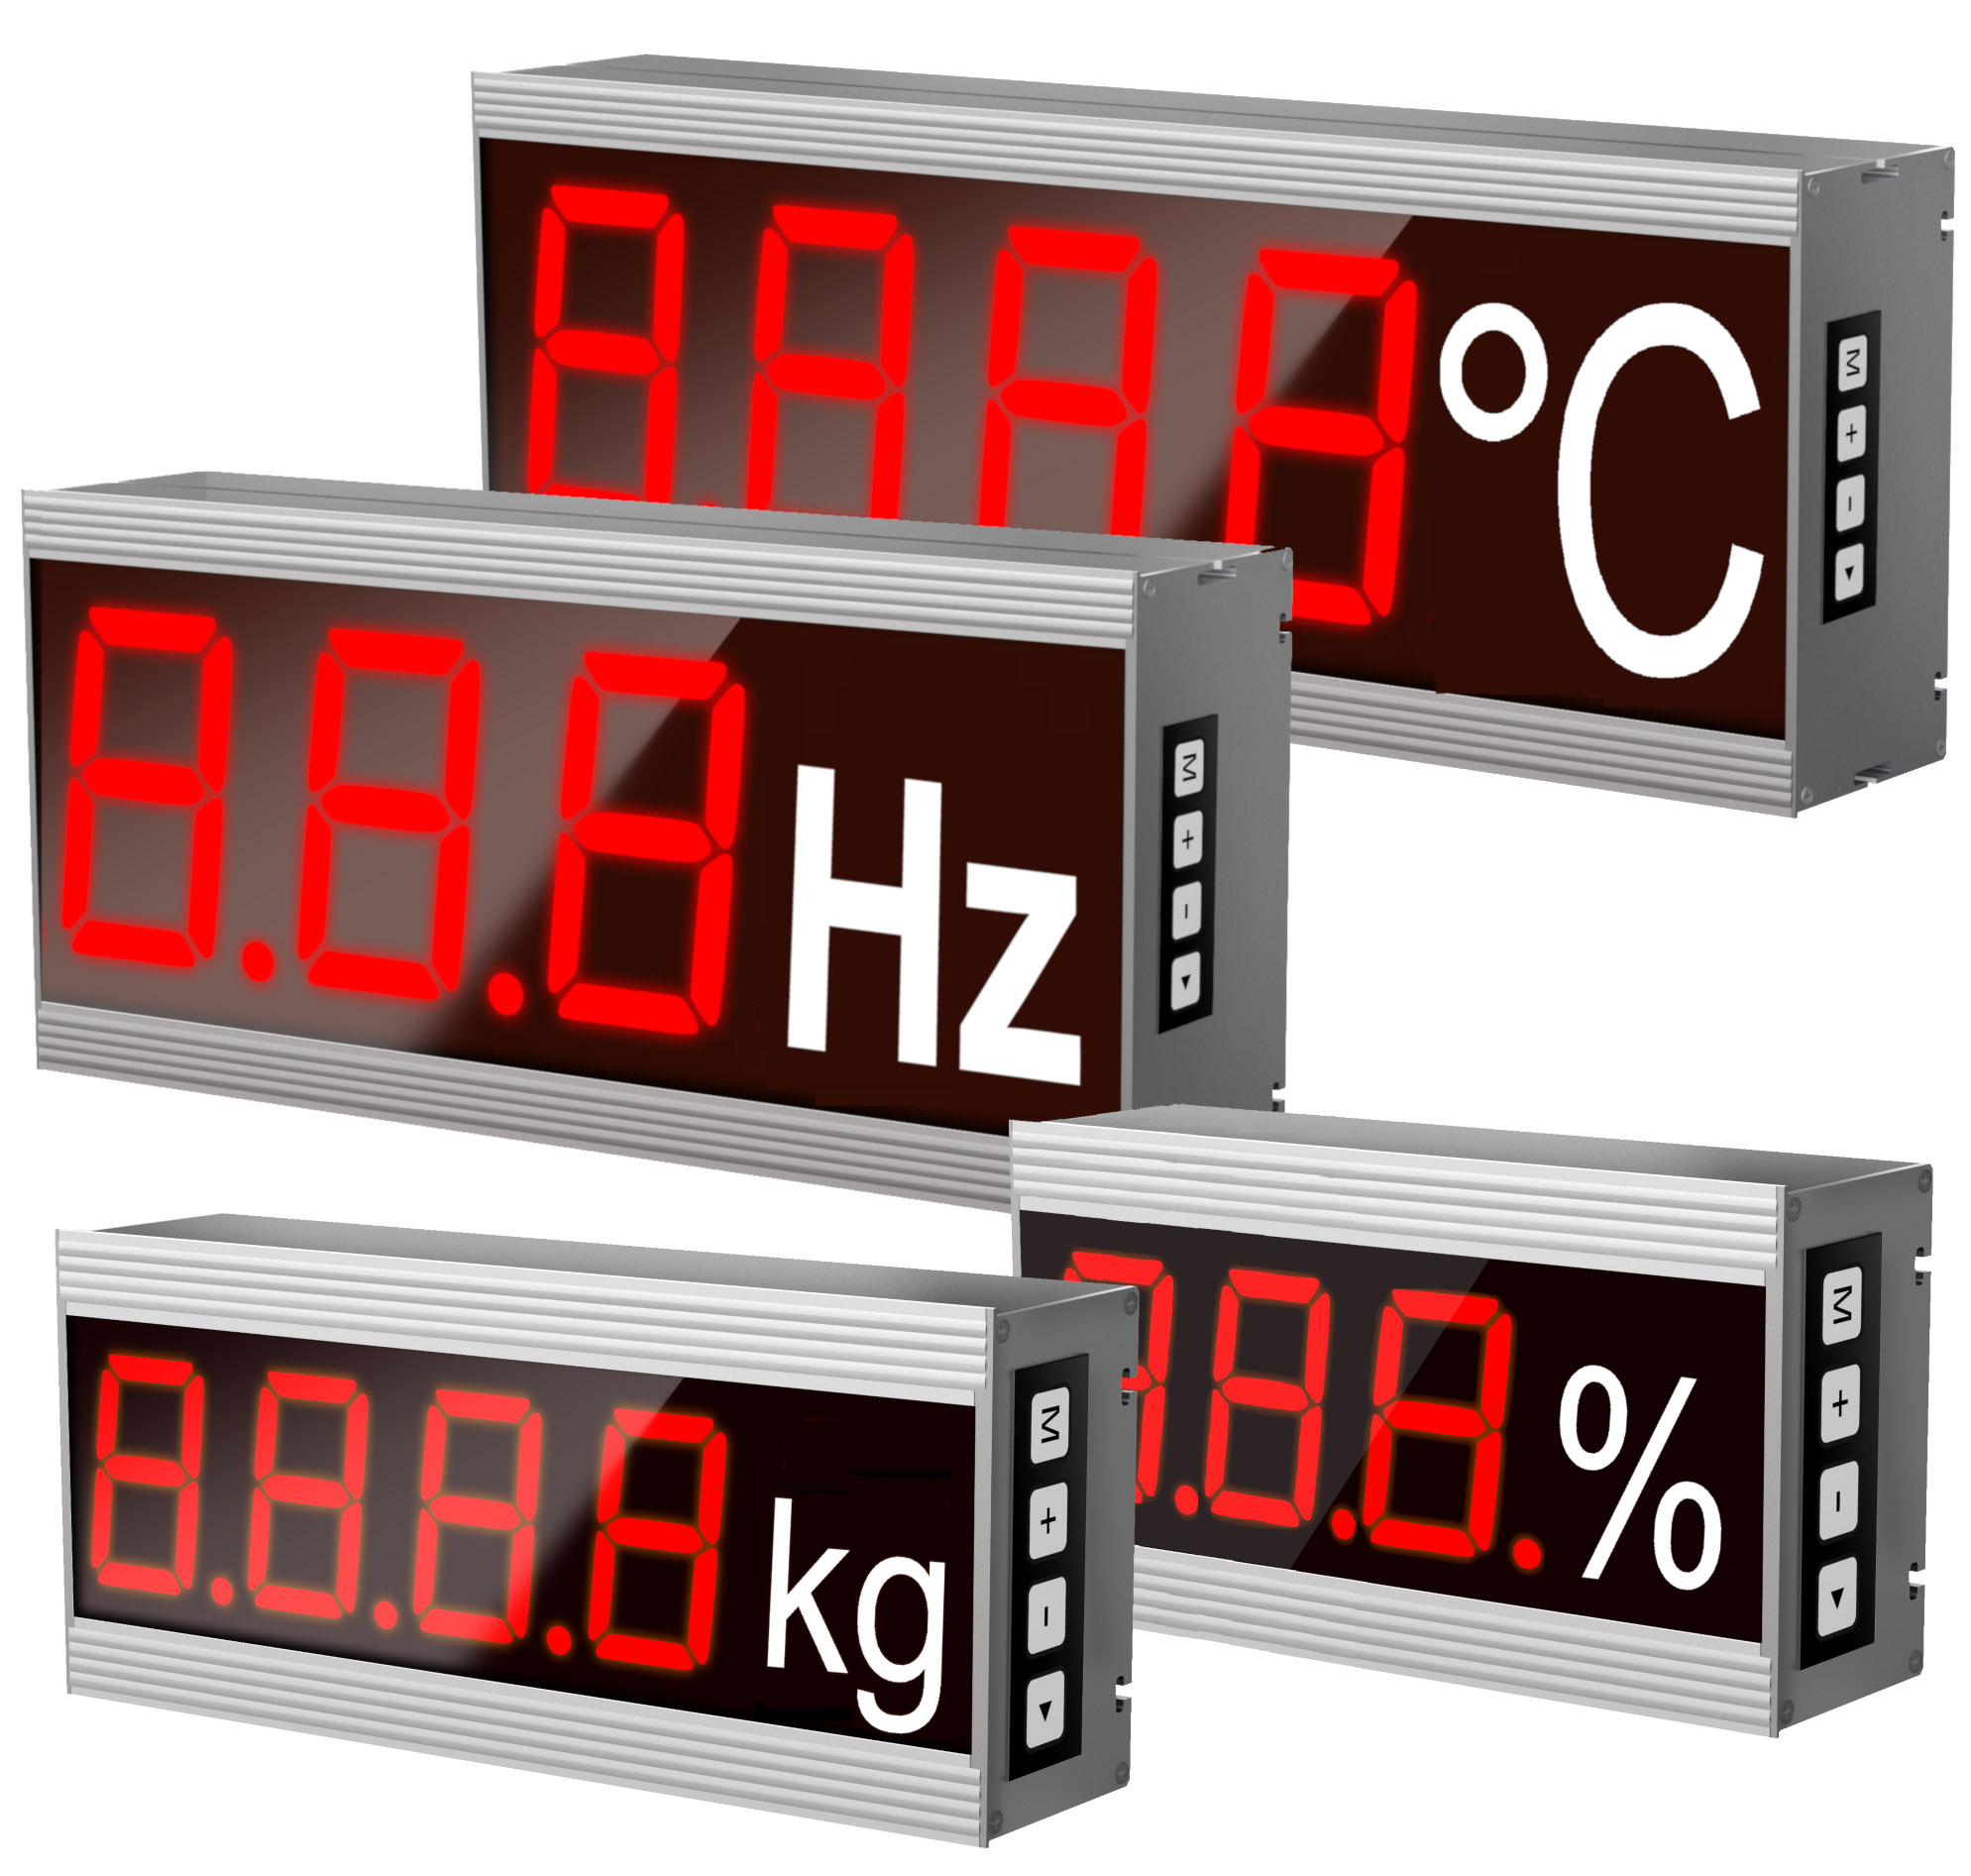 Numeric large displays, number of digits: 1 to 12 digits, dimension symbol, character sizes: 40 mm t